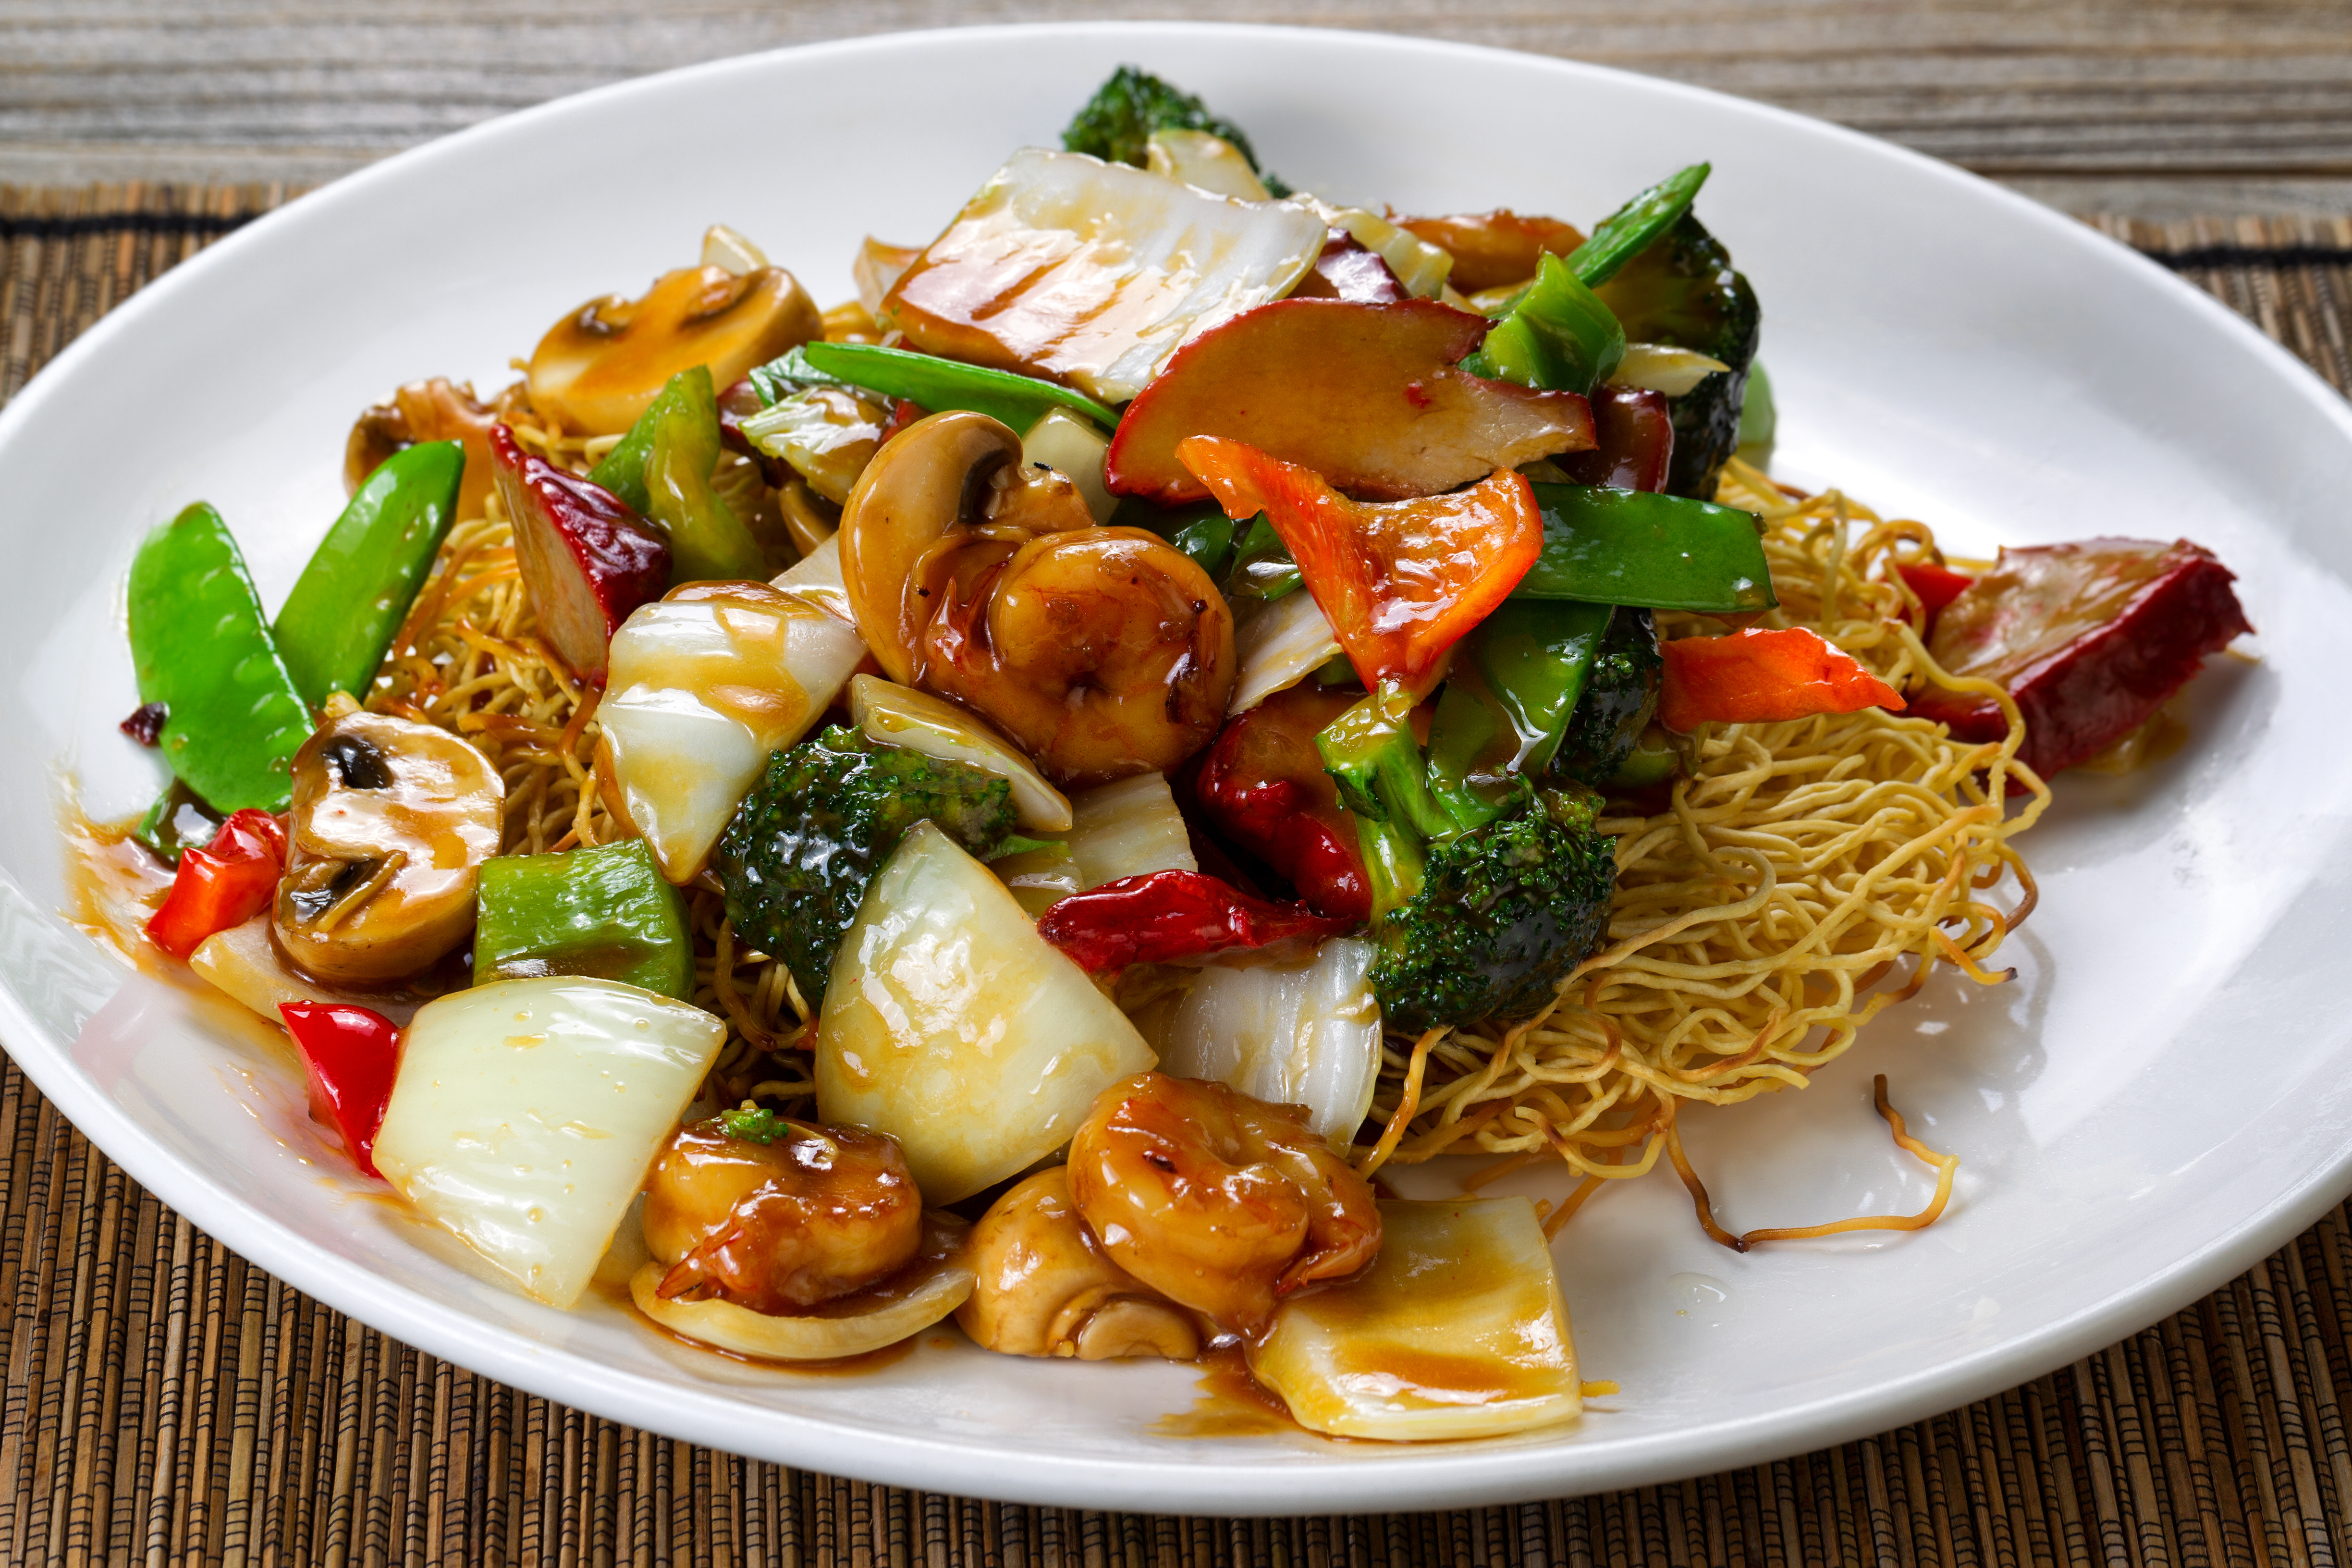 Fried noodle with shrimp and vegetables in sauce